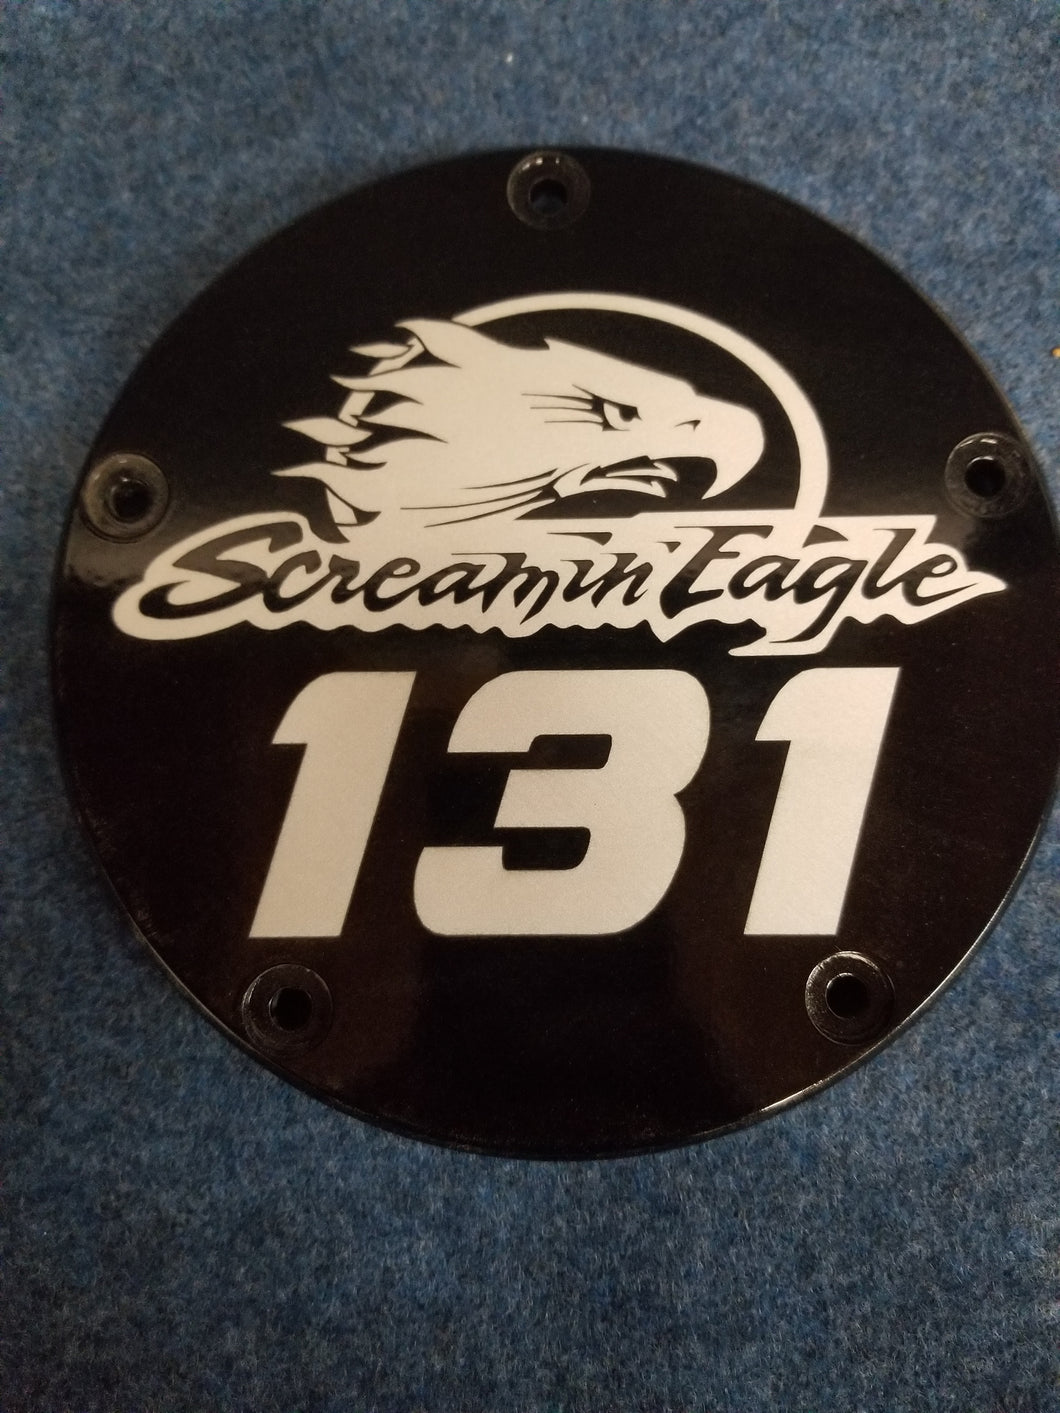 Harley davidson Screamin eagle 131 touring derby cover